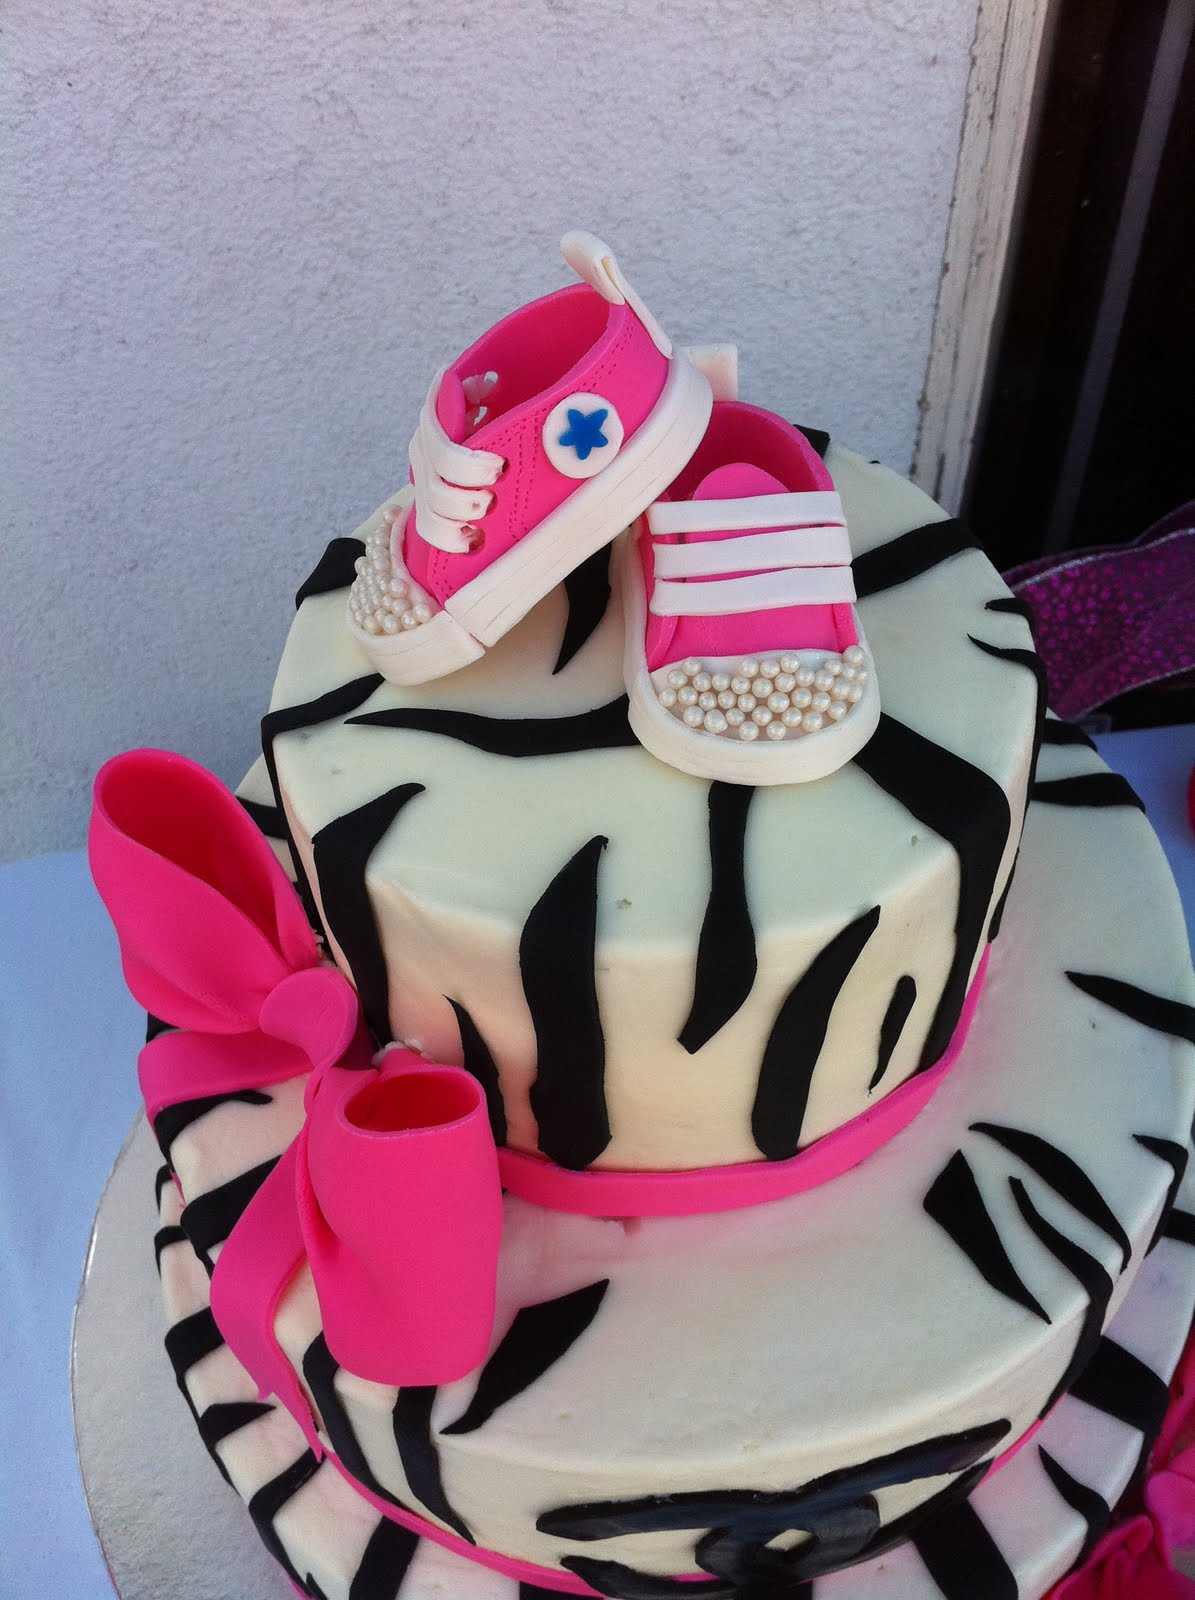 Cake Territory Whats Black And White With Hot Pink Converse